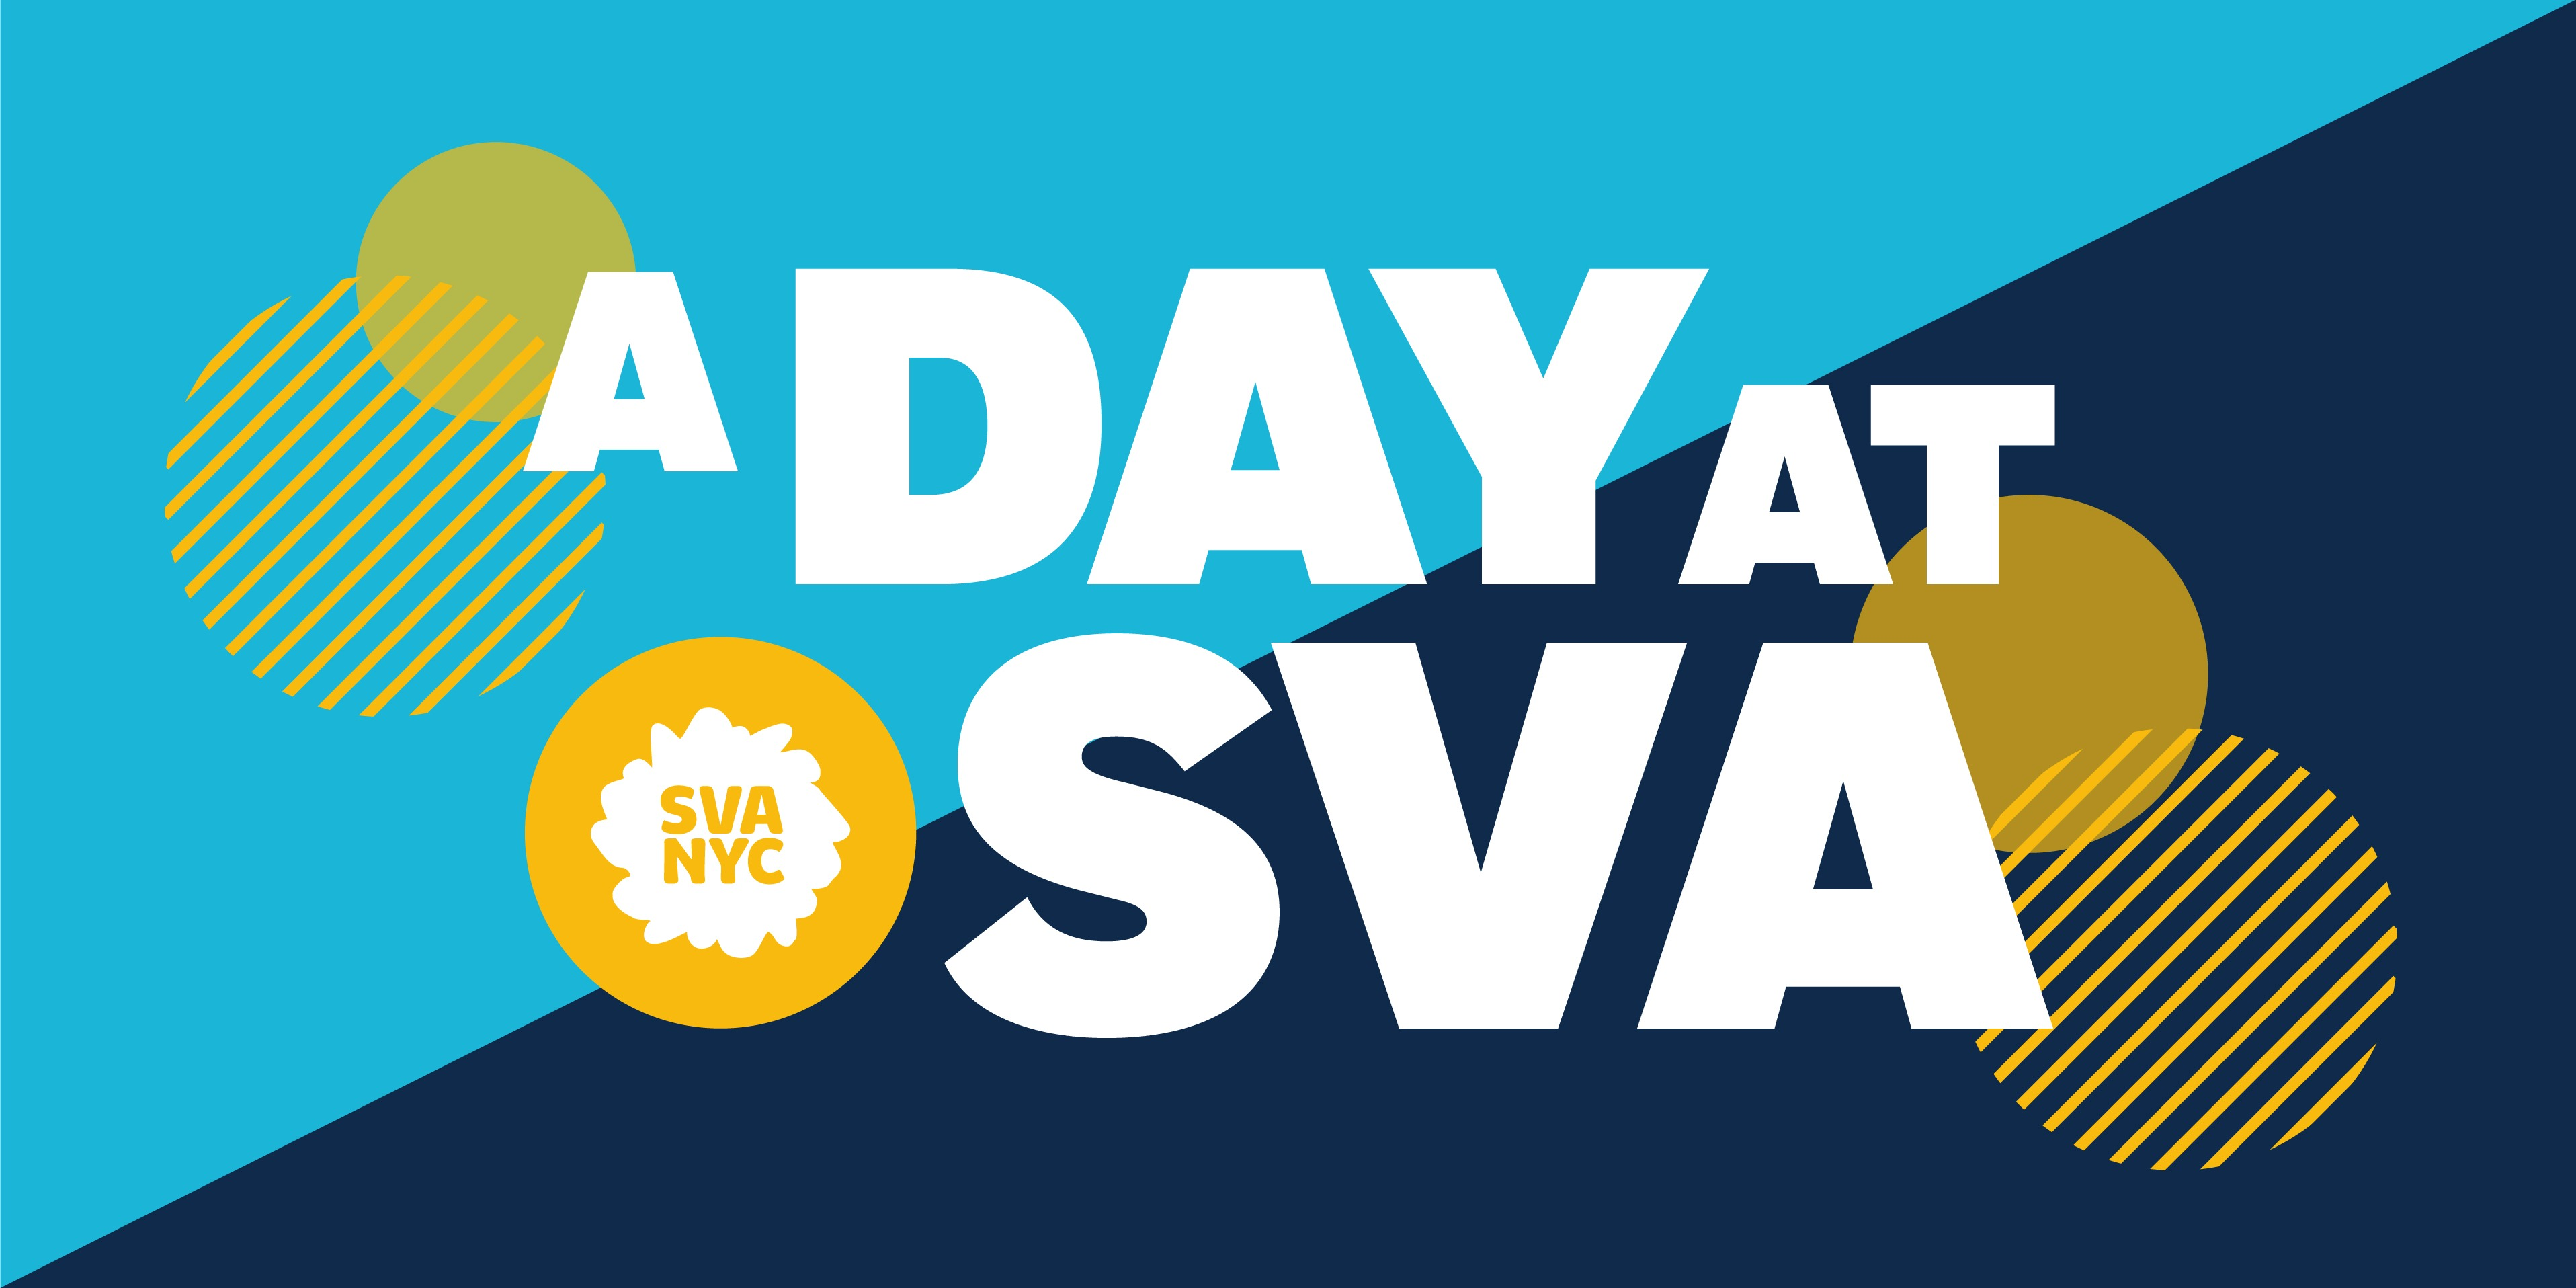 A Day at SVA logo